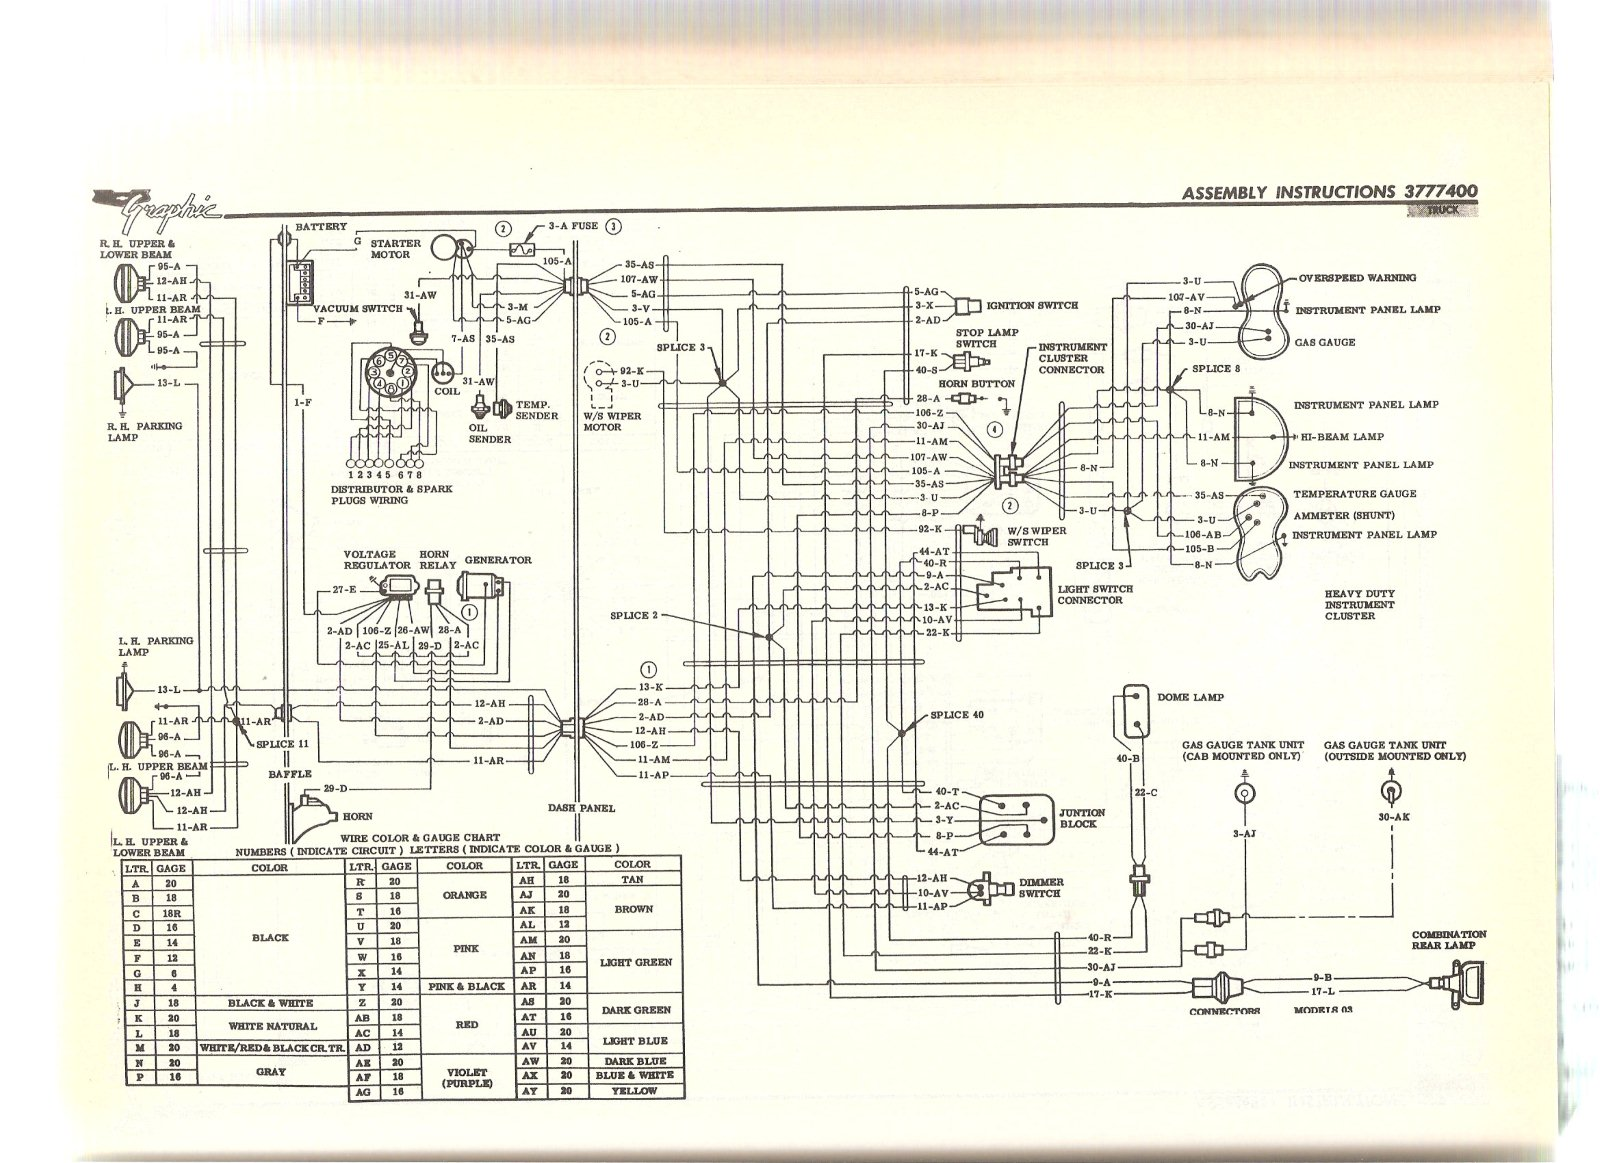 1960 1961%20Wiring%20Diagram5